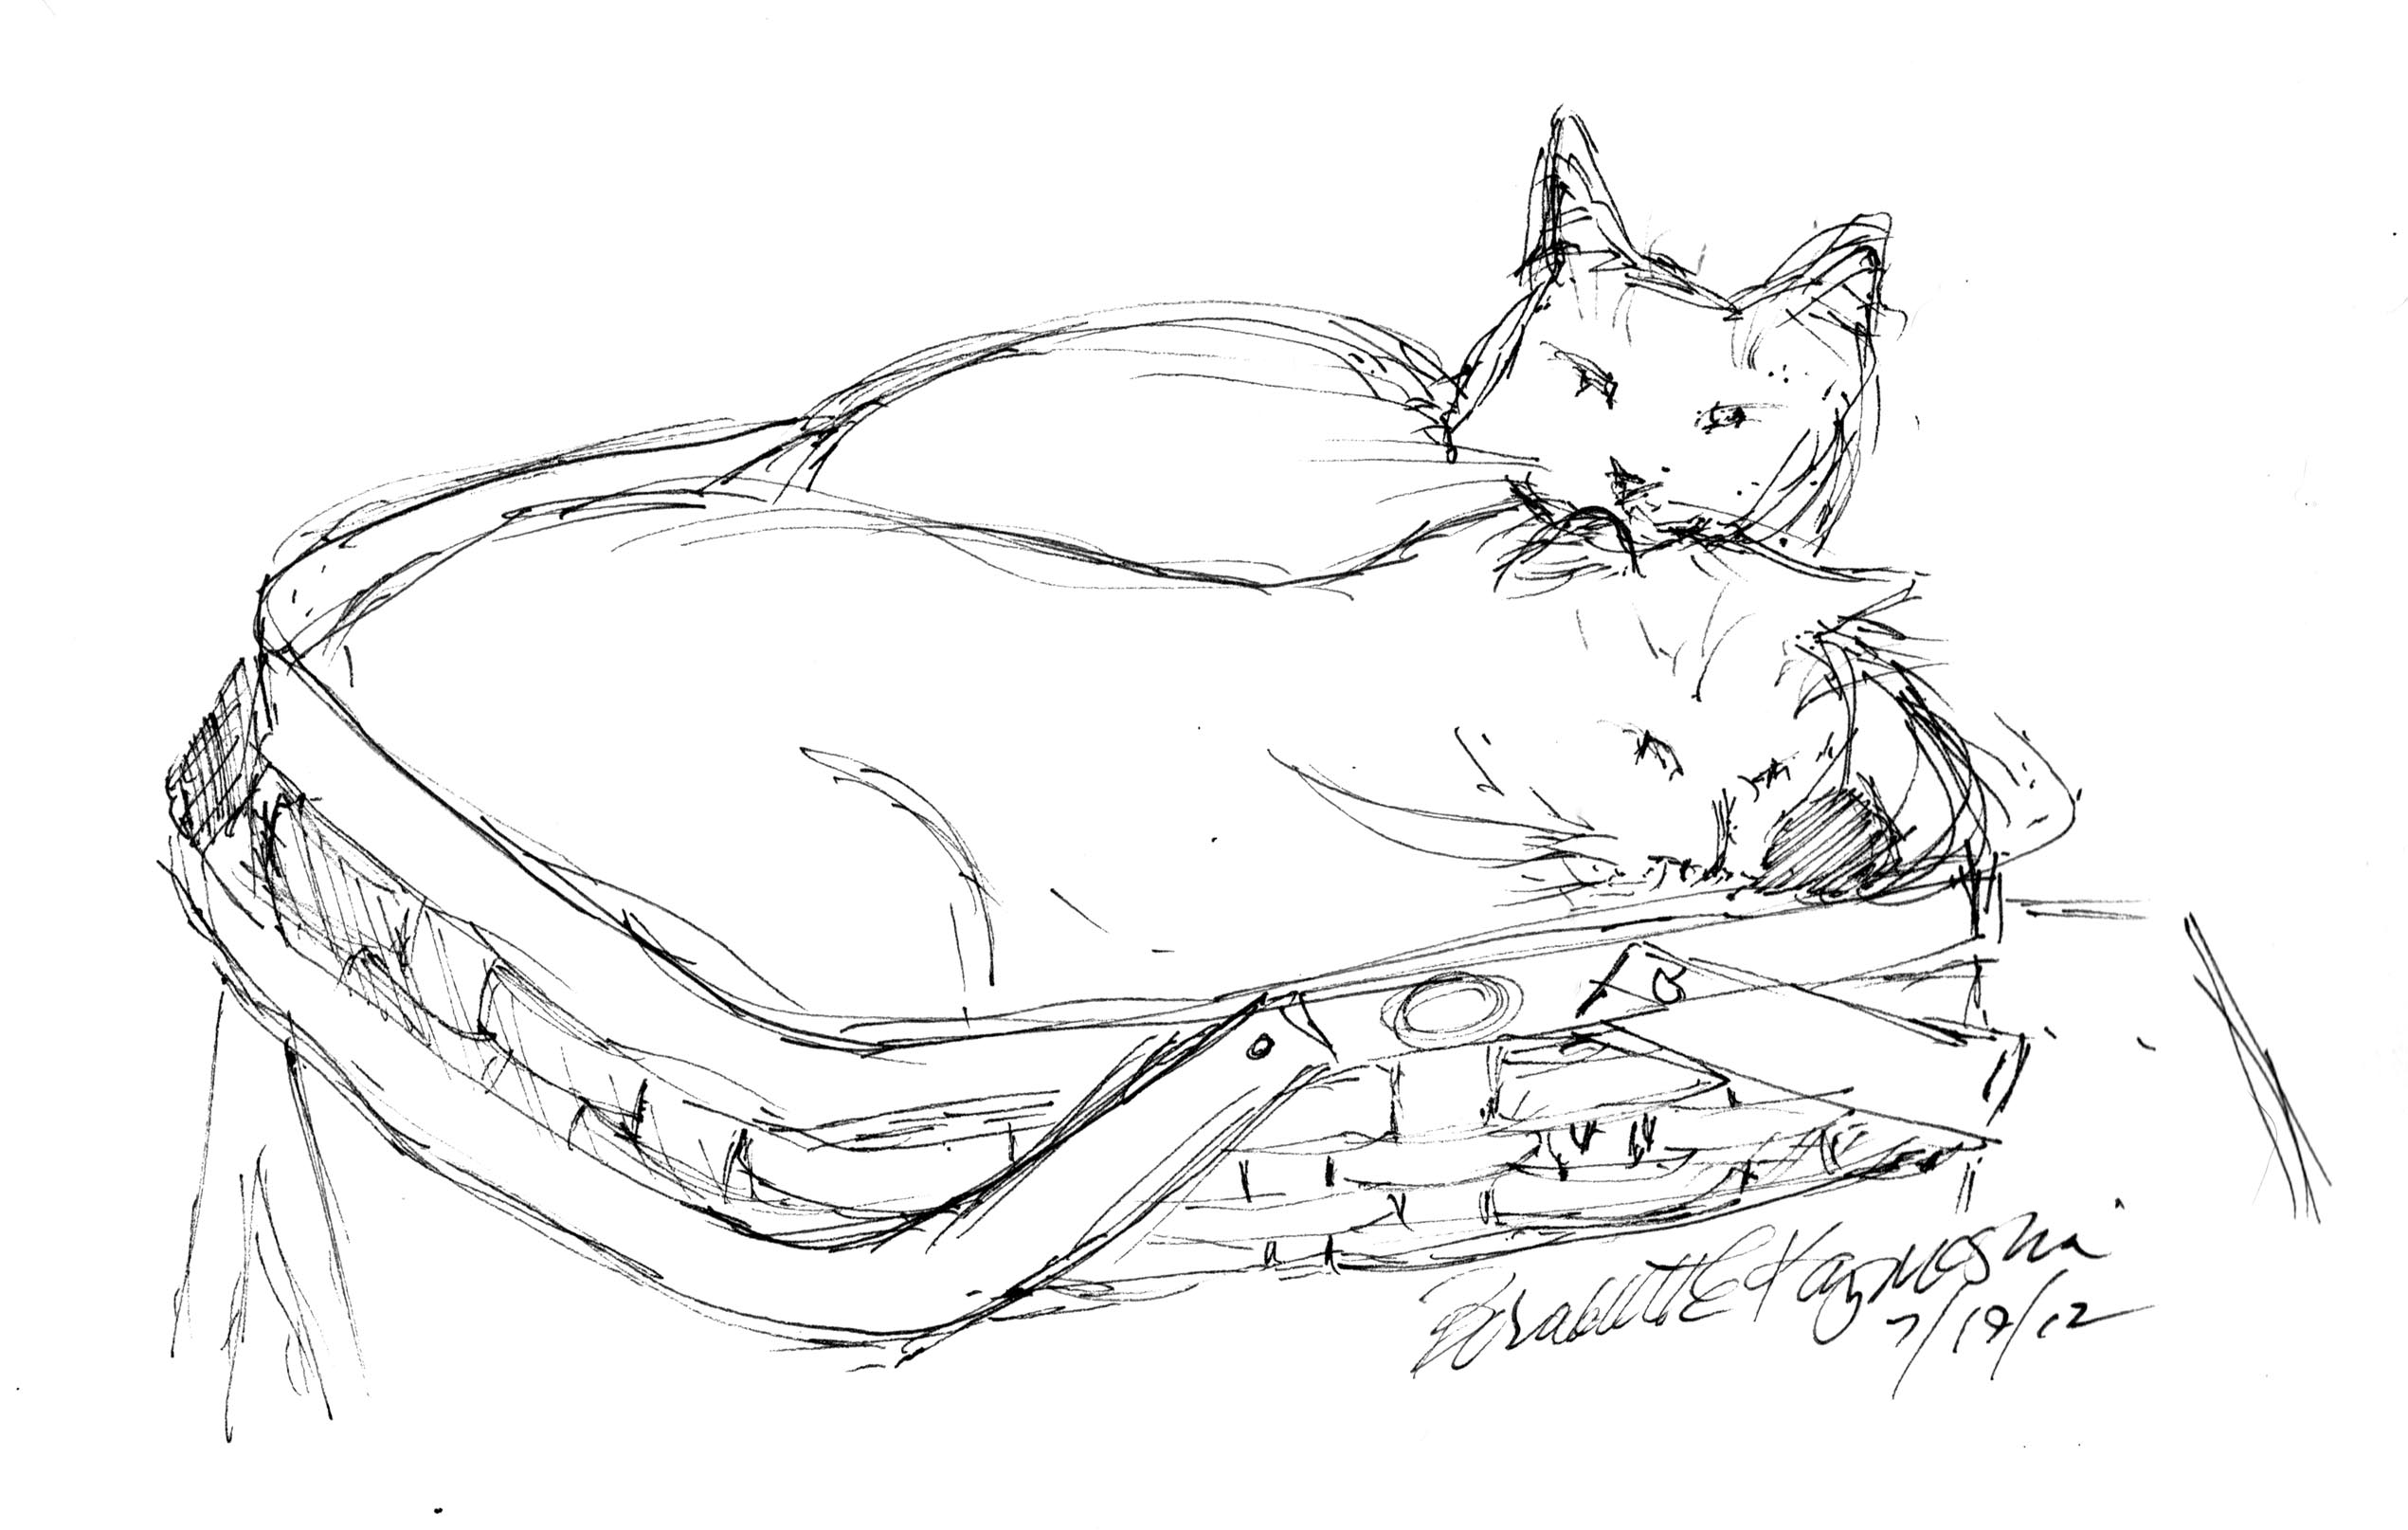 Daily Sketch Reprise: Two Cats in a Basket, the Sketch, 2012